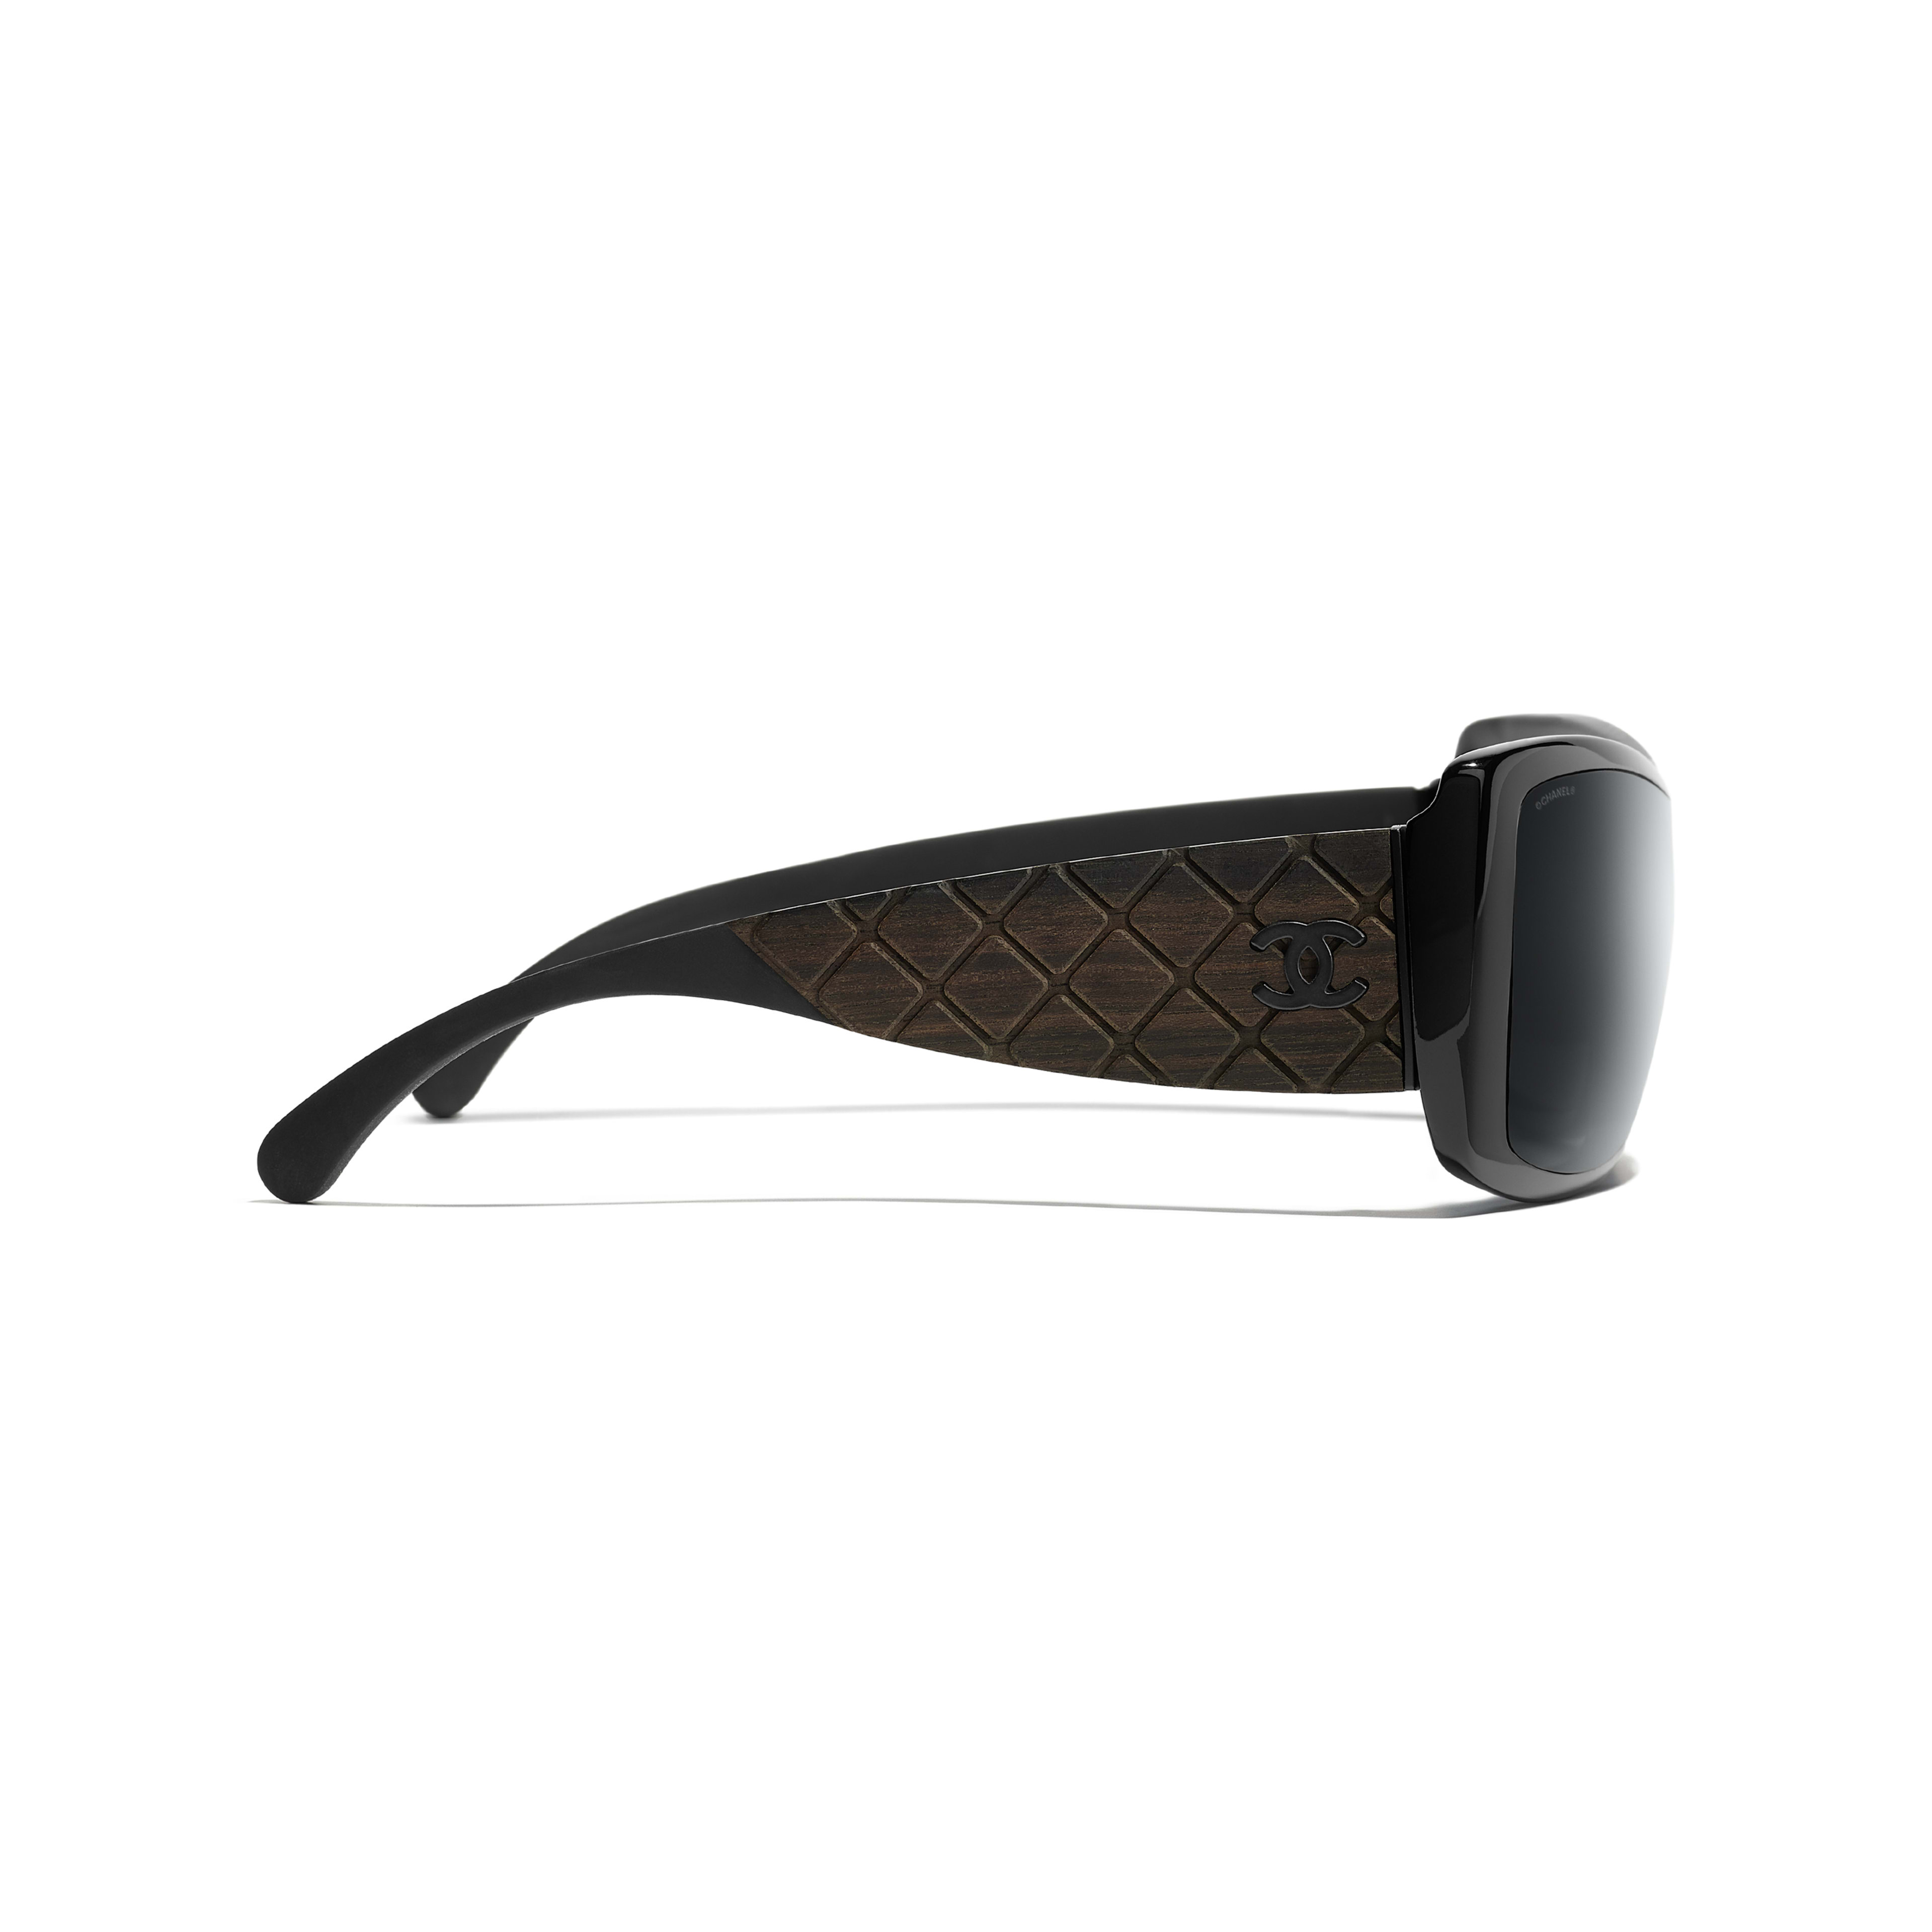 Shield Sunglasses - Black - Acetate, Wood & Rubber - Other view - see full sized version